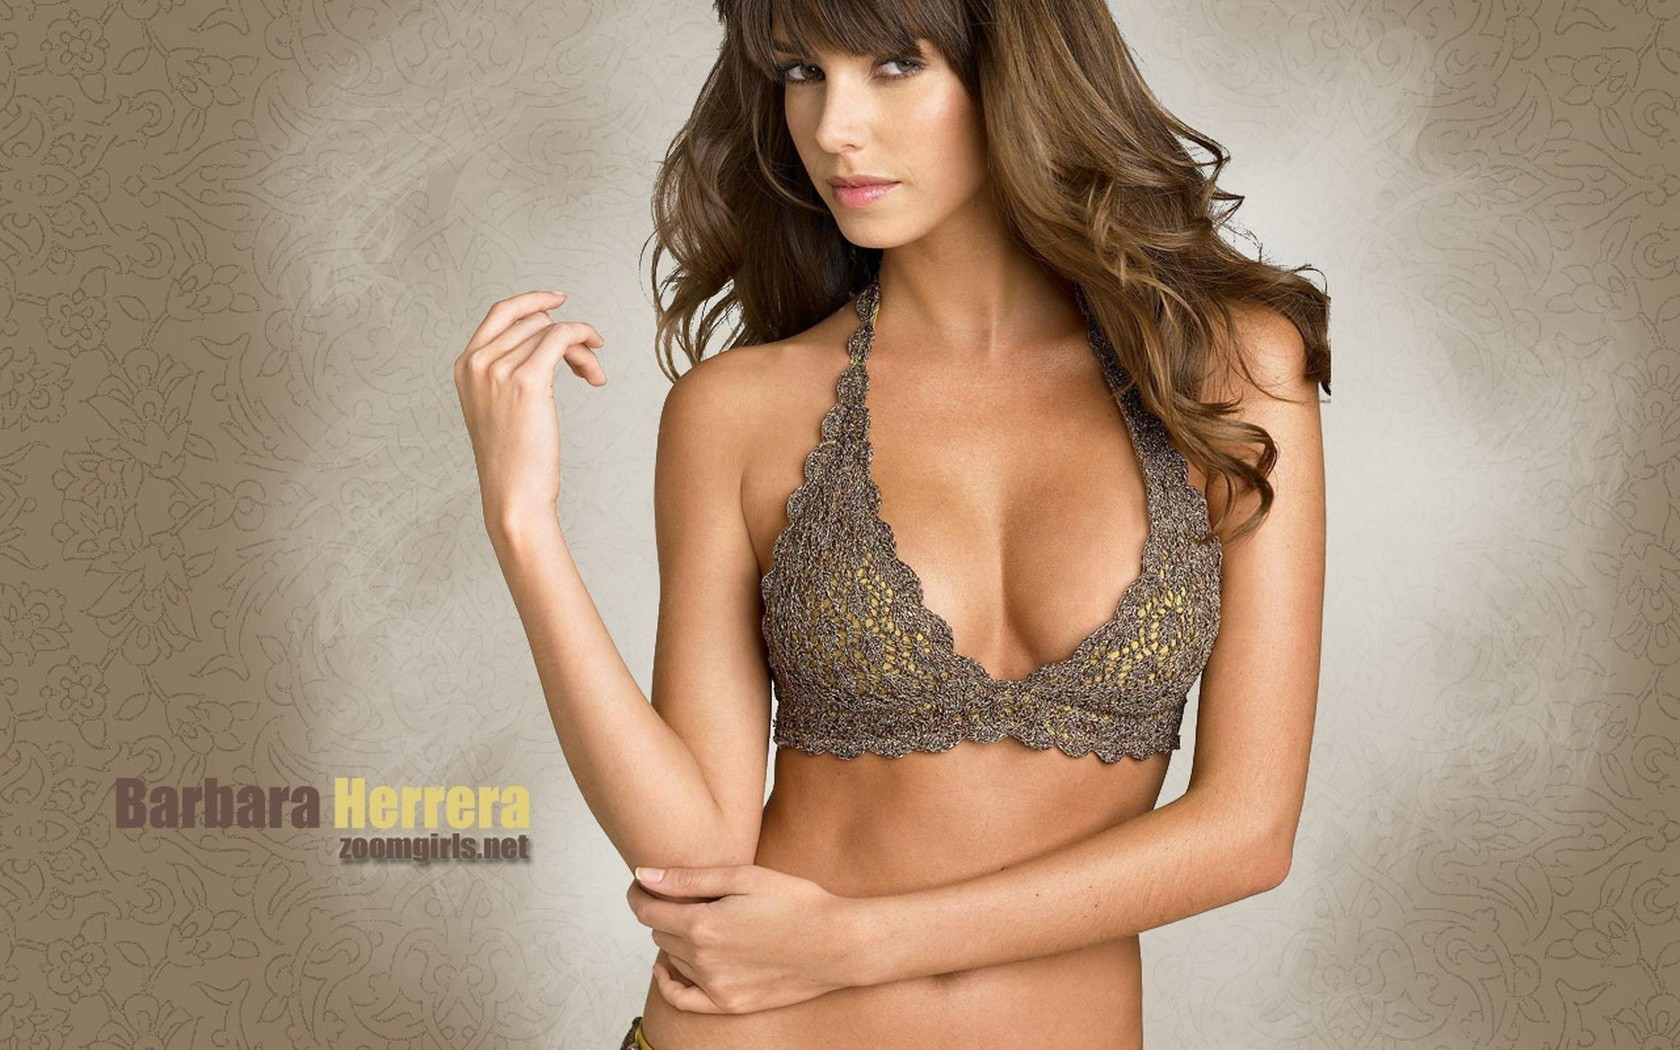 brunettes woman bra Barbara HD Wallpaper